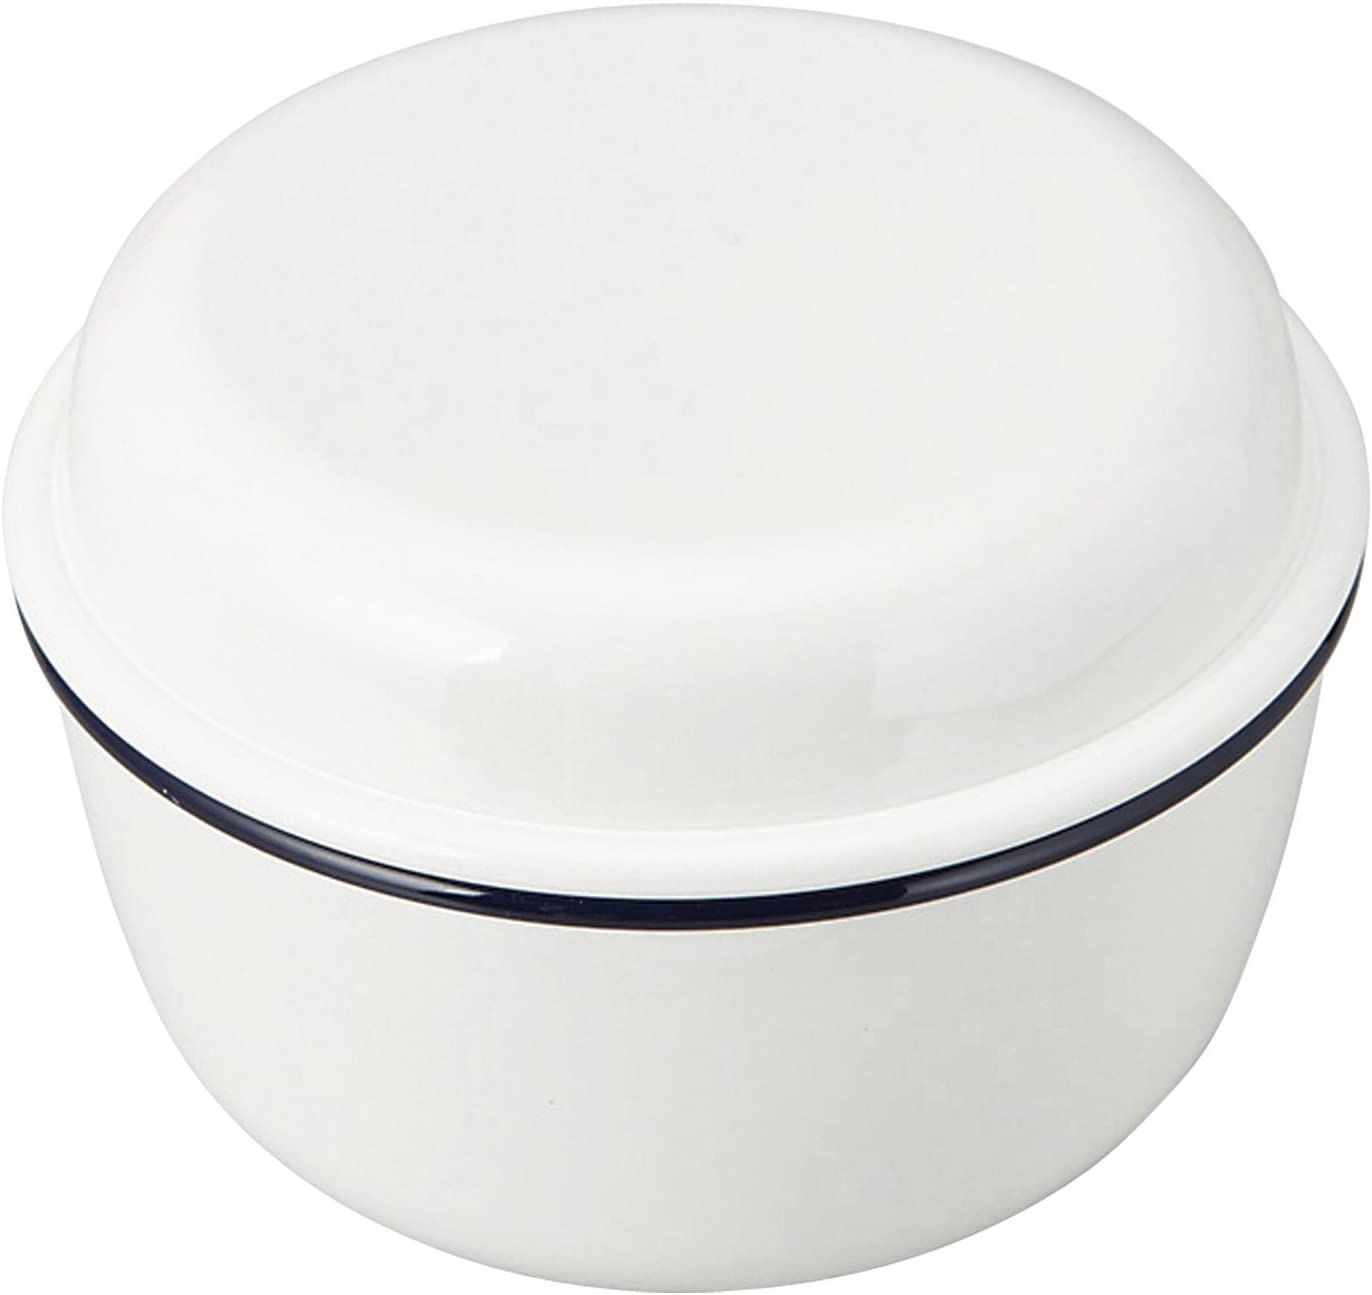 Takenaka Retro Moda Lunch Bowl | White & Navy